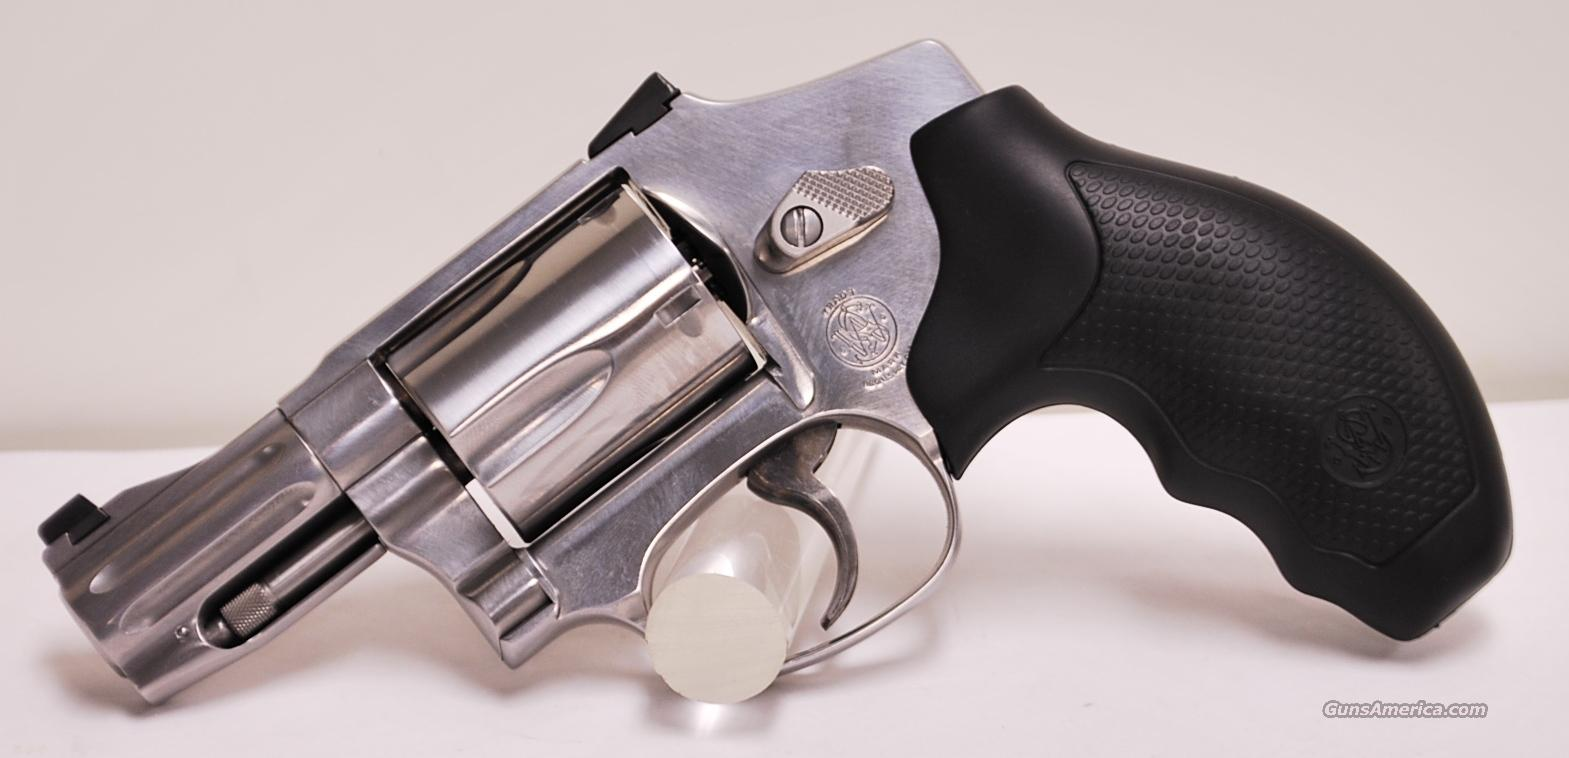 Smith and Wesson 640 Pro Series LOCKLESS .357 magnum  Guns > Pistols > Smith & Wesson Revolvers > Pocket Pistols